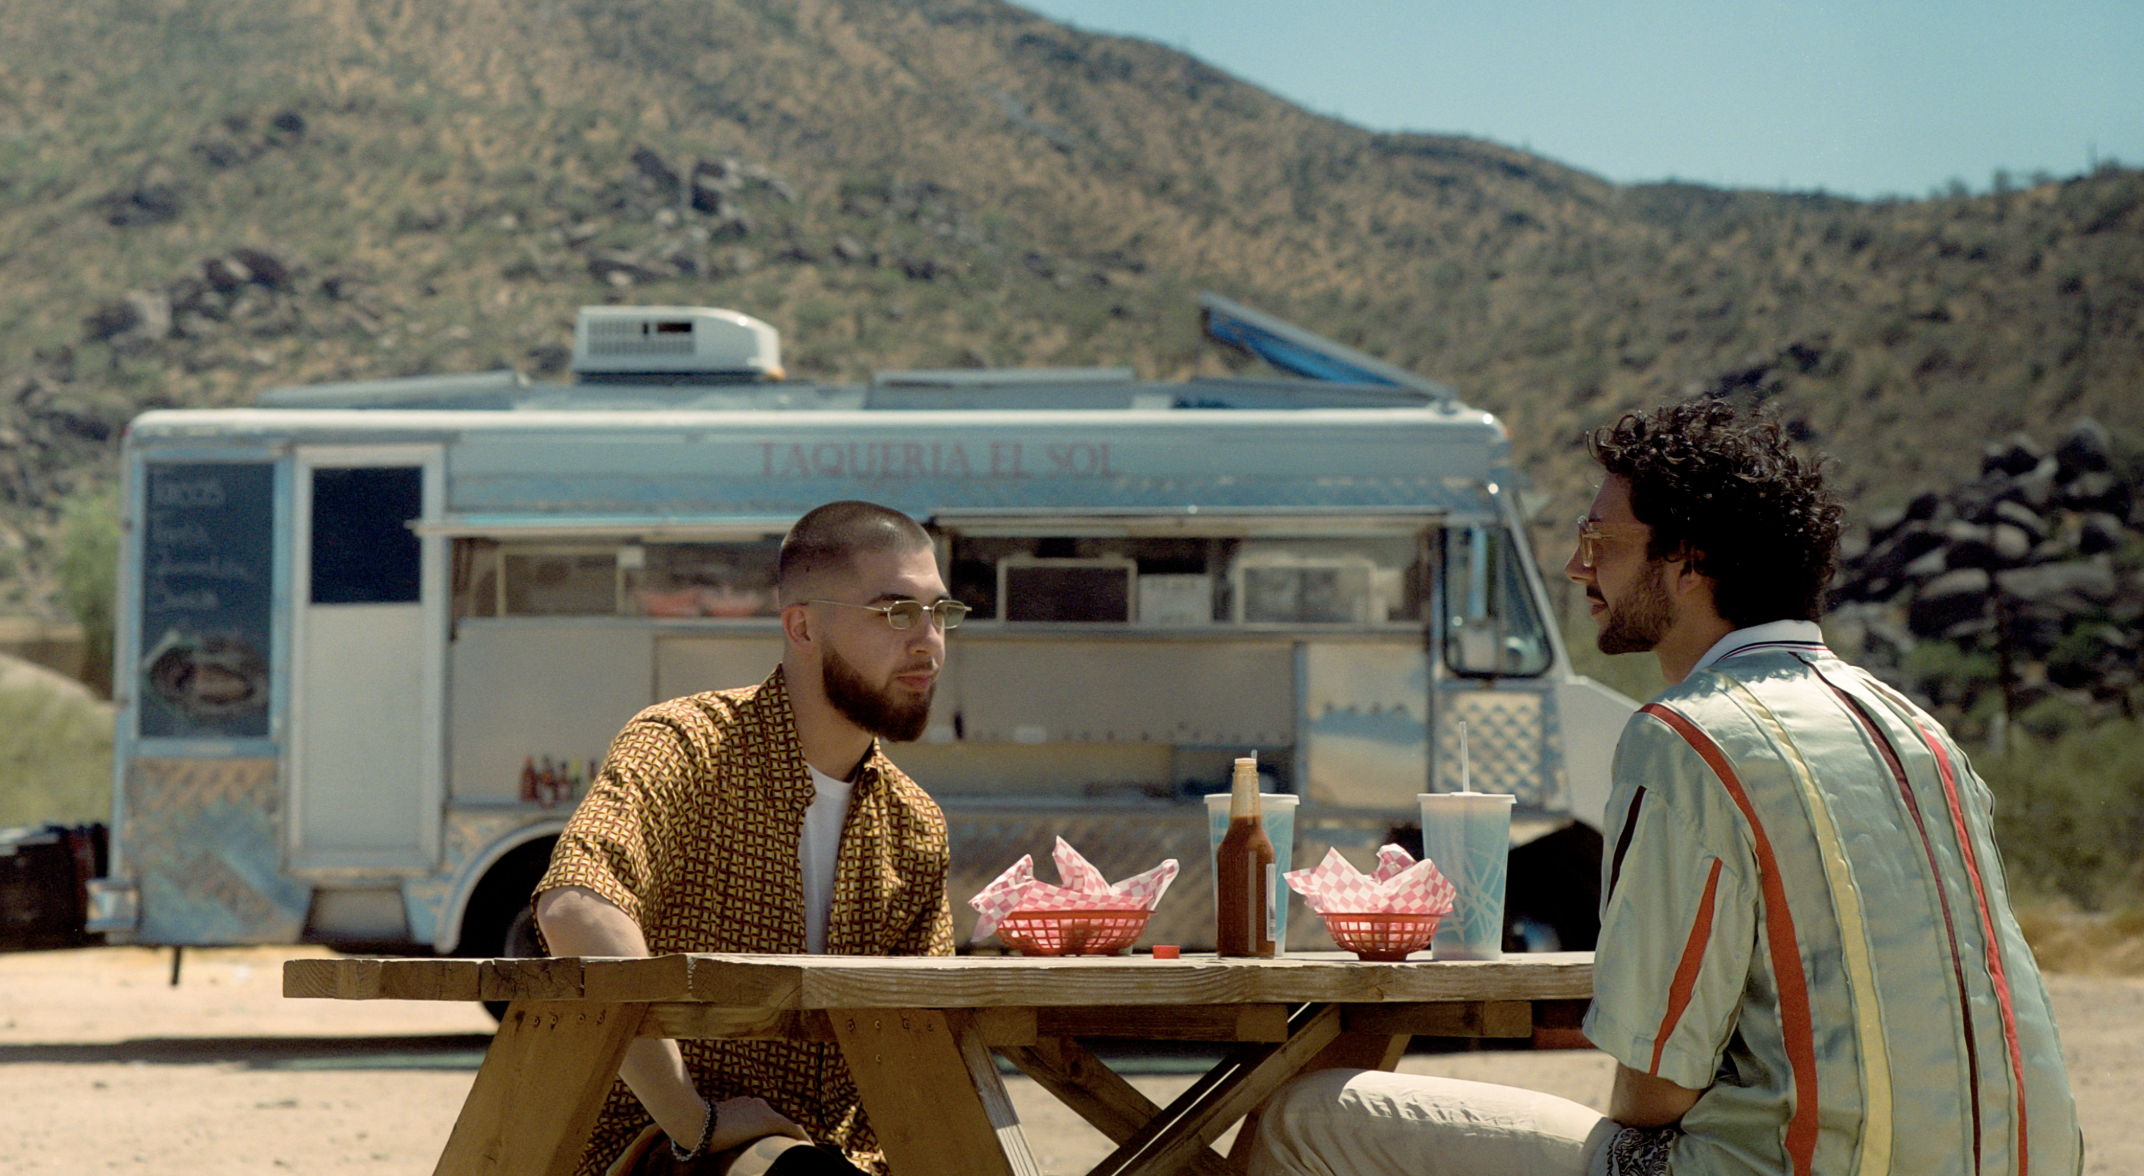 Majid Jordan ft. Khalid: Caught Up – A Process of Collaboration   June 25, 2019 — Keen to explore the songwriting and recording process, VSCO sent photographer Jack McKain to document their video shoot in the desert, and we caught up with the artists to explore the lesser known stories behind their work. From backstage sessions to the importance of finding creative space on the road, they share their process alongside behind-the-scenes photos, offering a glimpse of their journey to make it anyway.